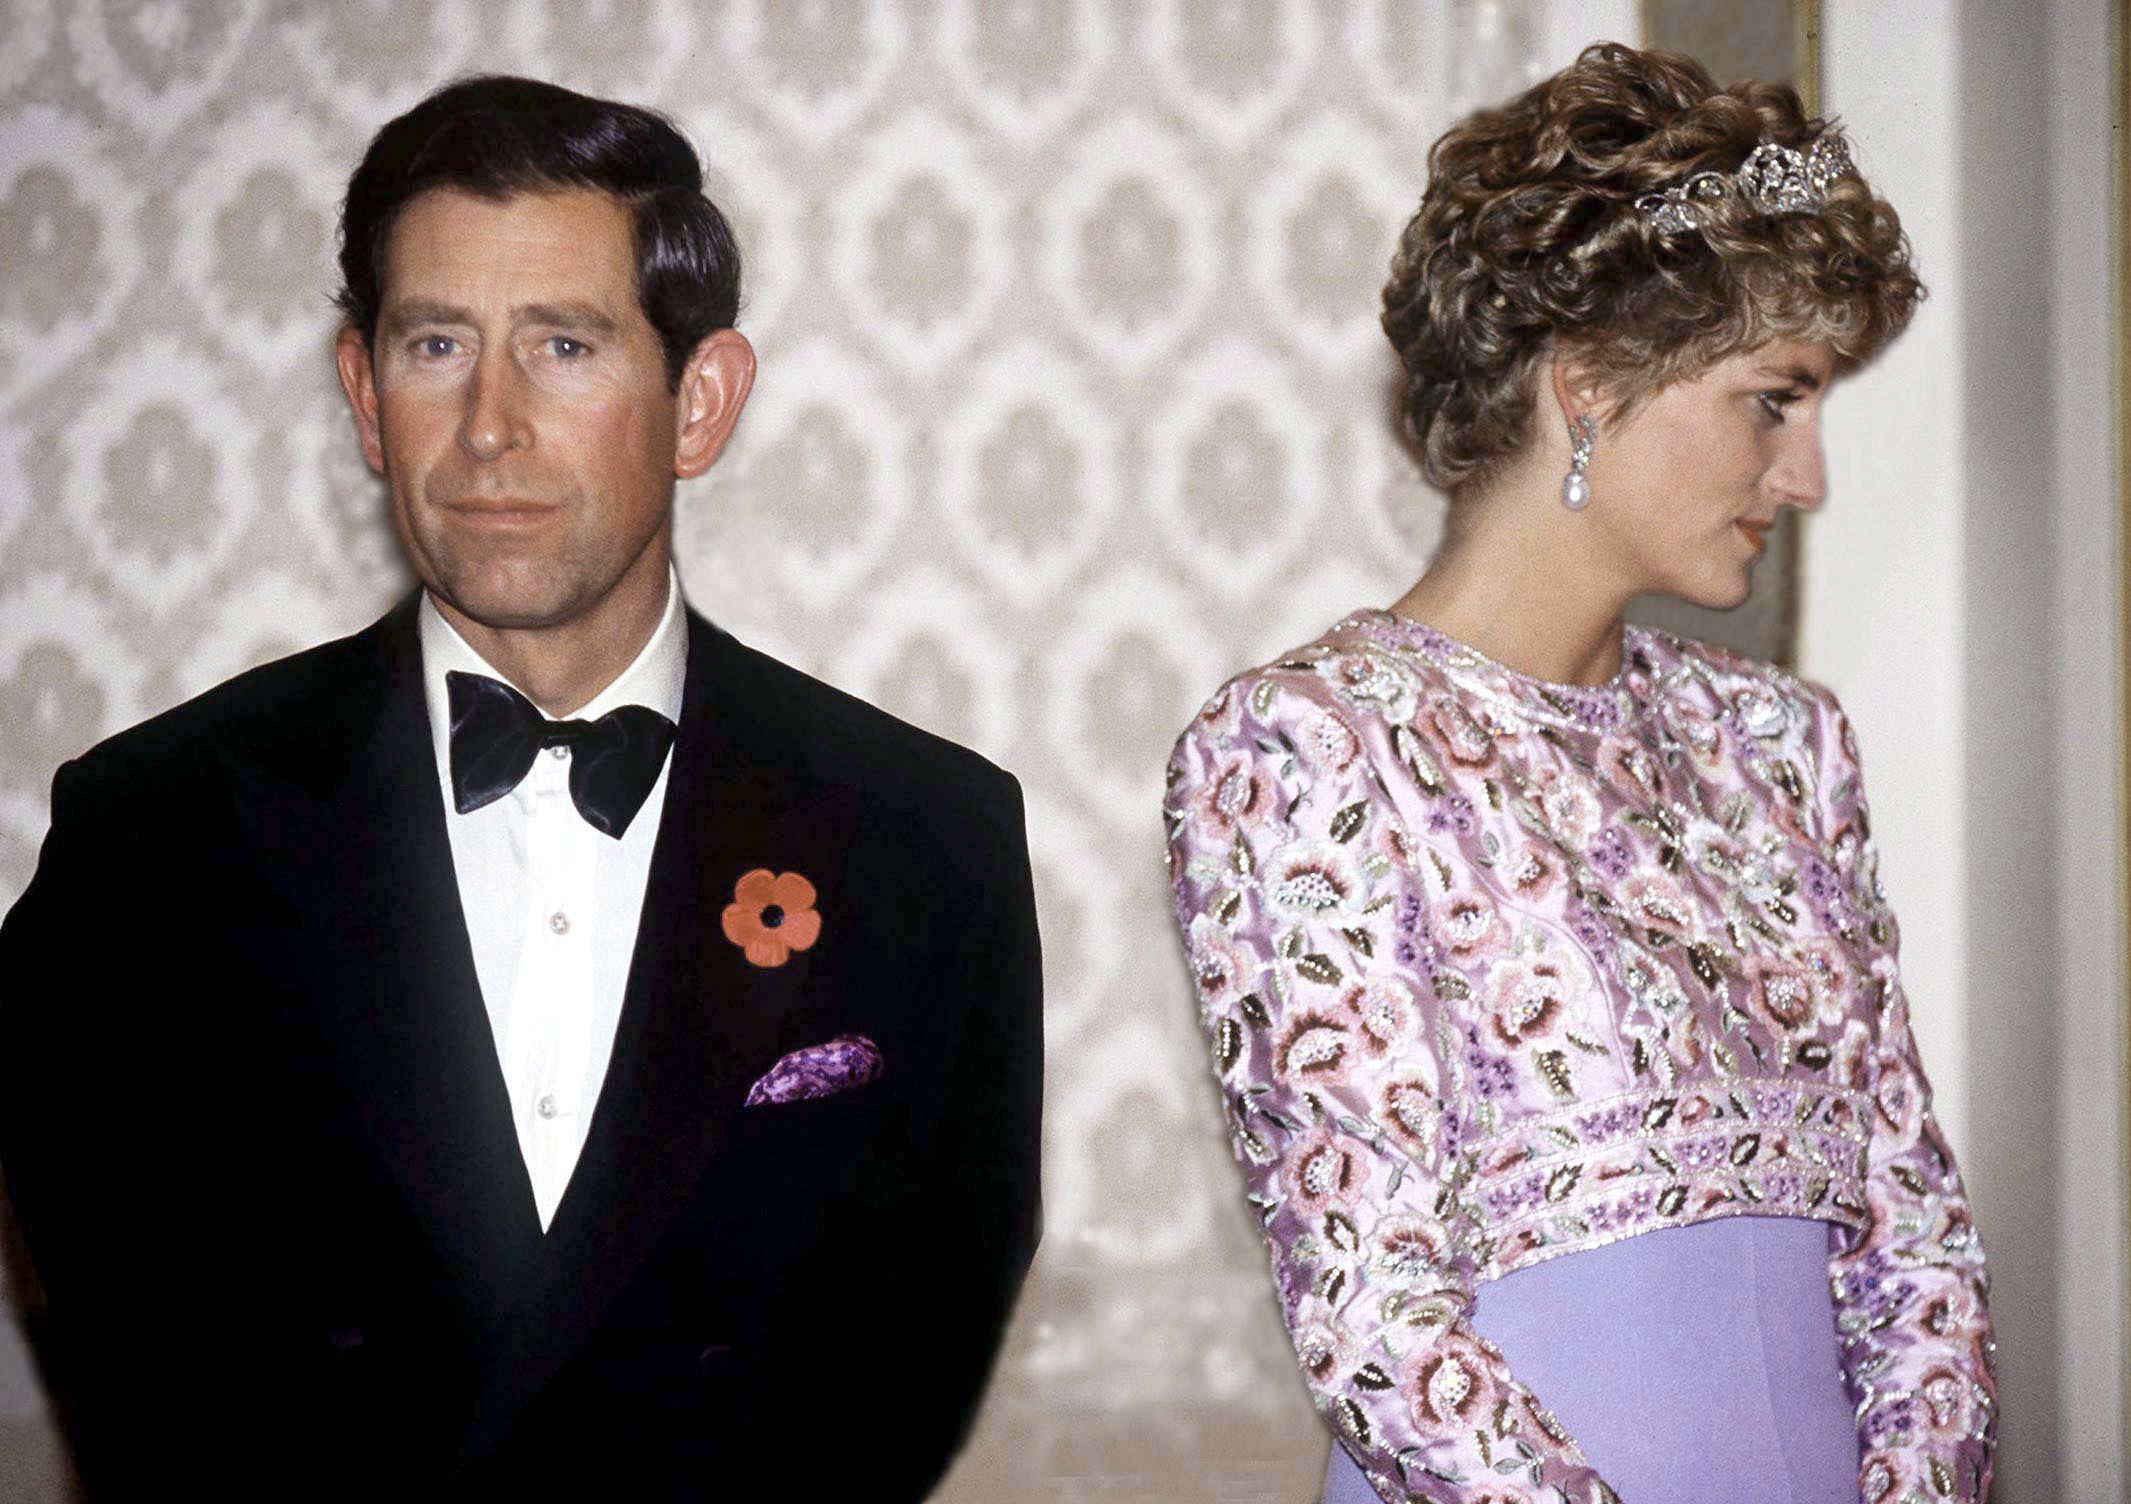 The Reasons for Princess Diana and Prince Charles's Divorce